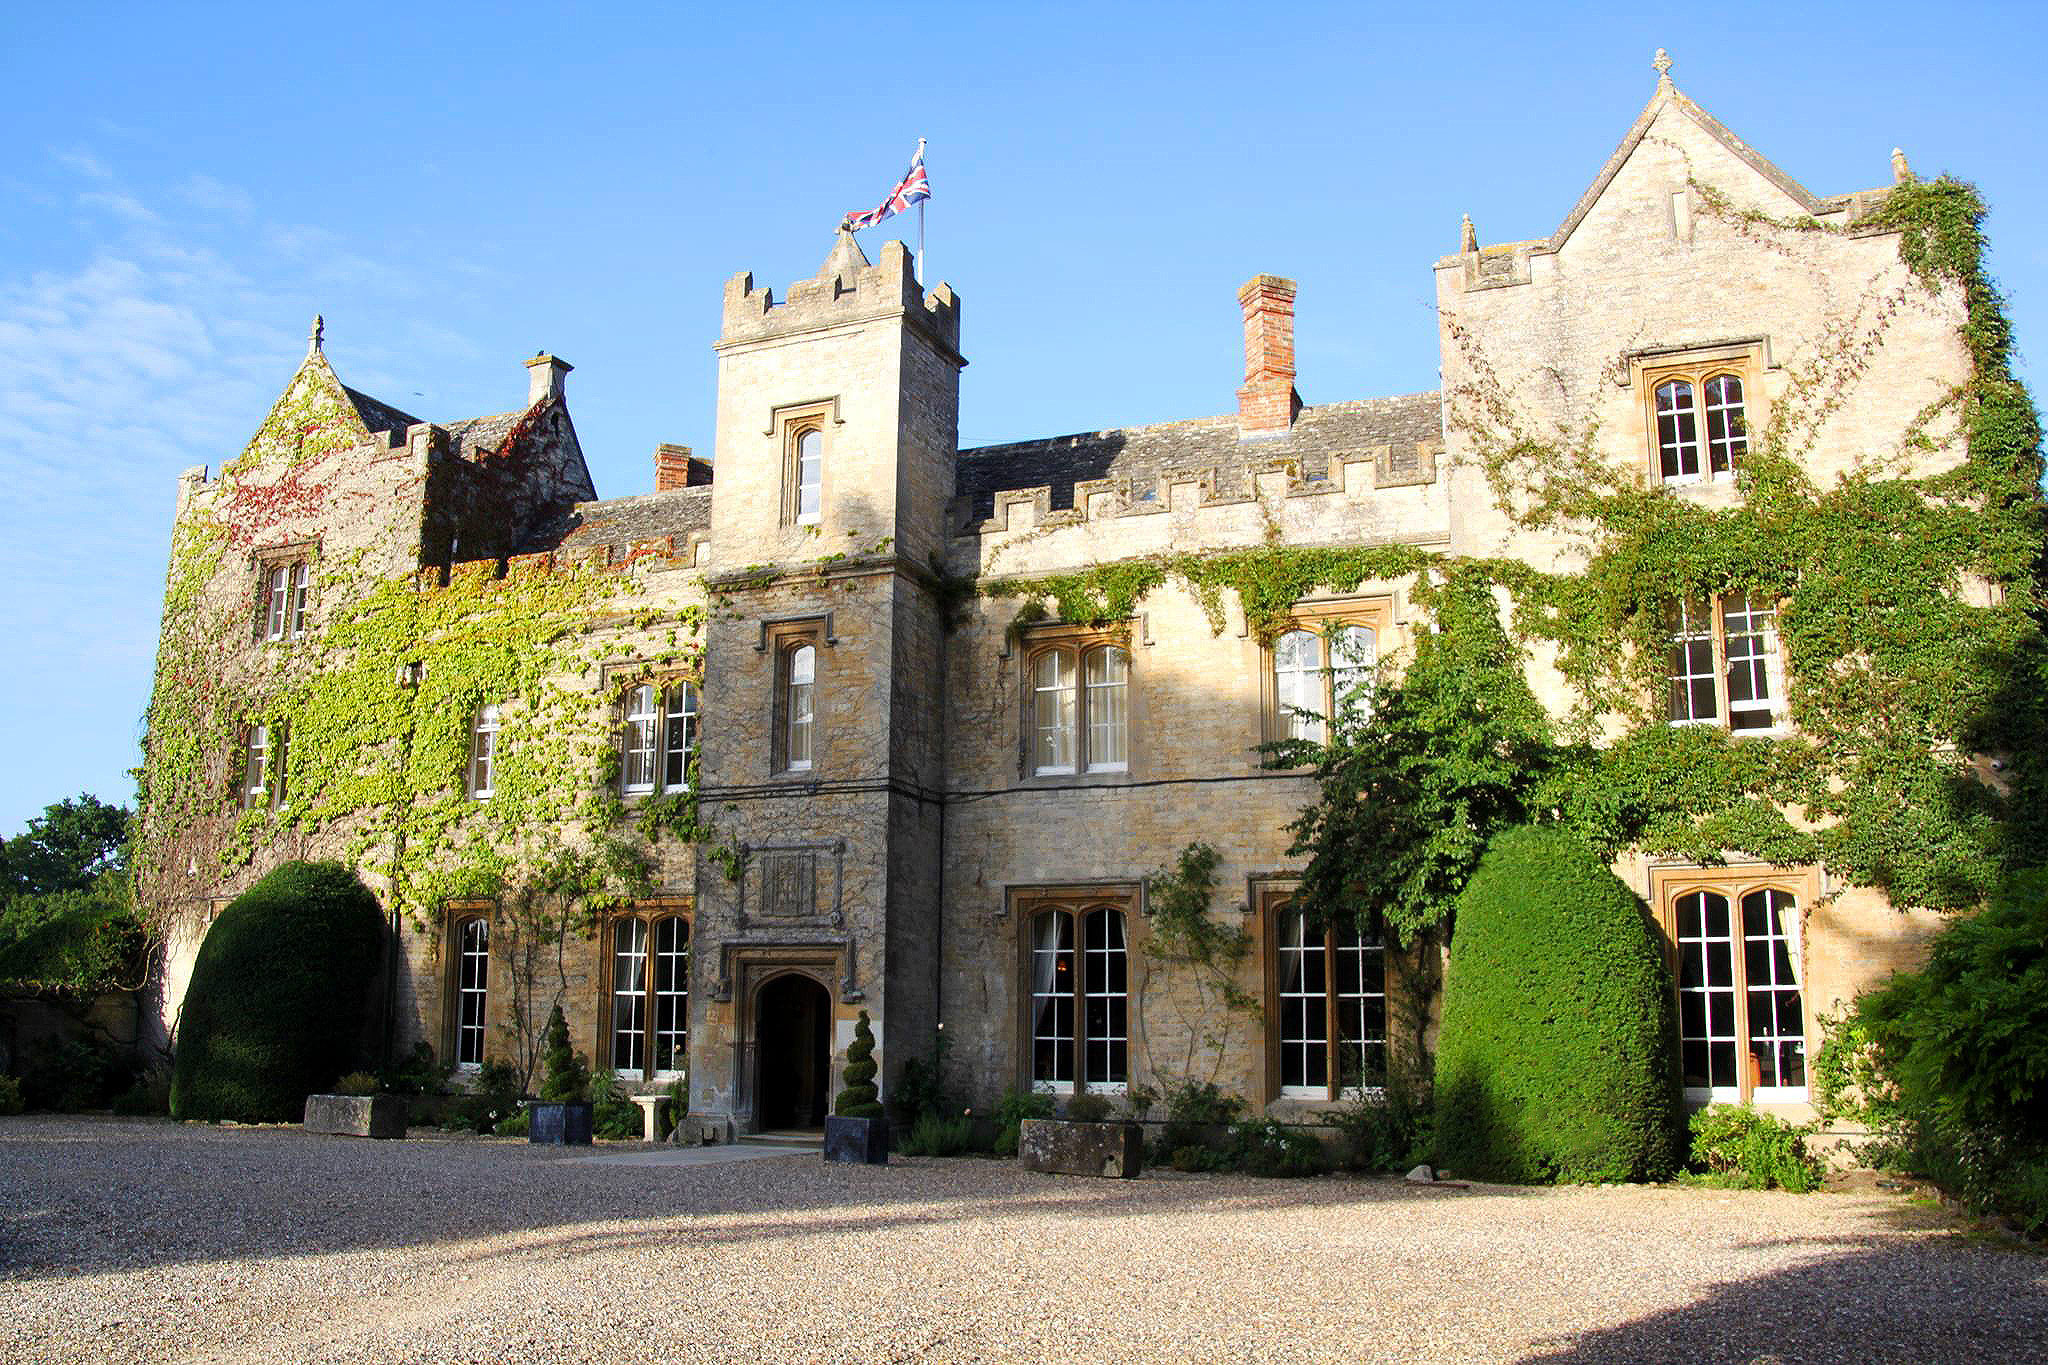 House of speed green bay - Our Next Stopover Was The Manor Hotel At Weston On The Green Near Oxford A Beautiful Manor House With A History Dating Back 900 Years